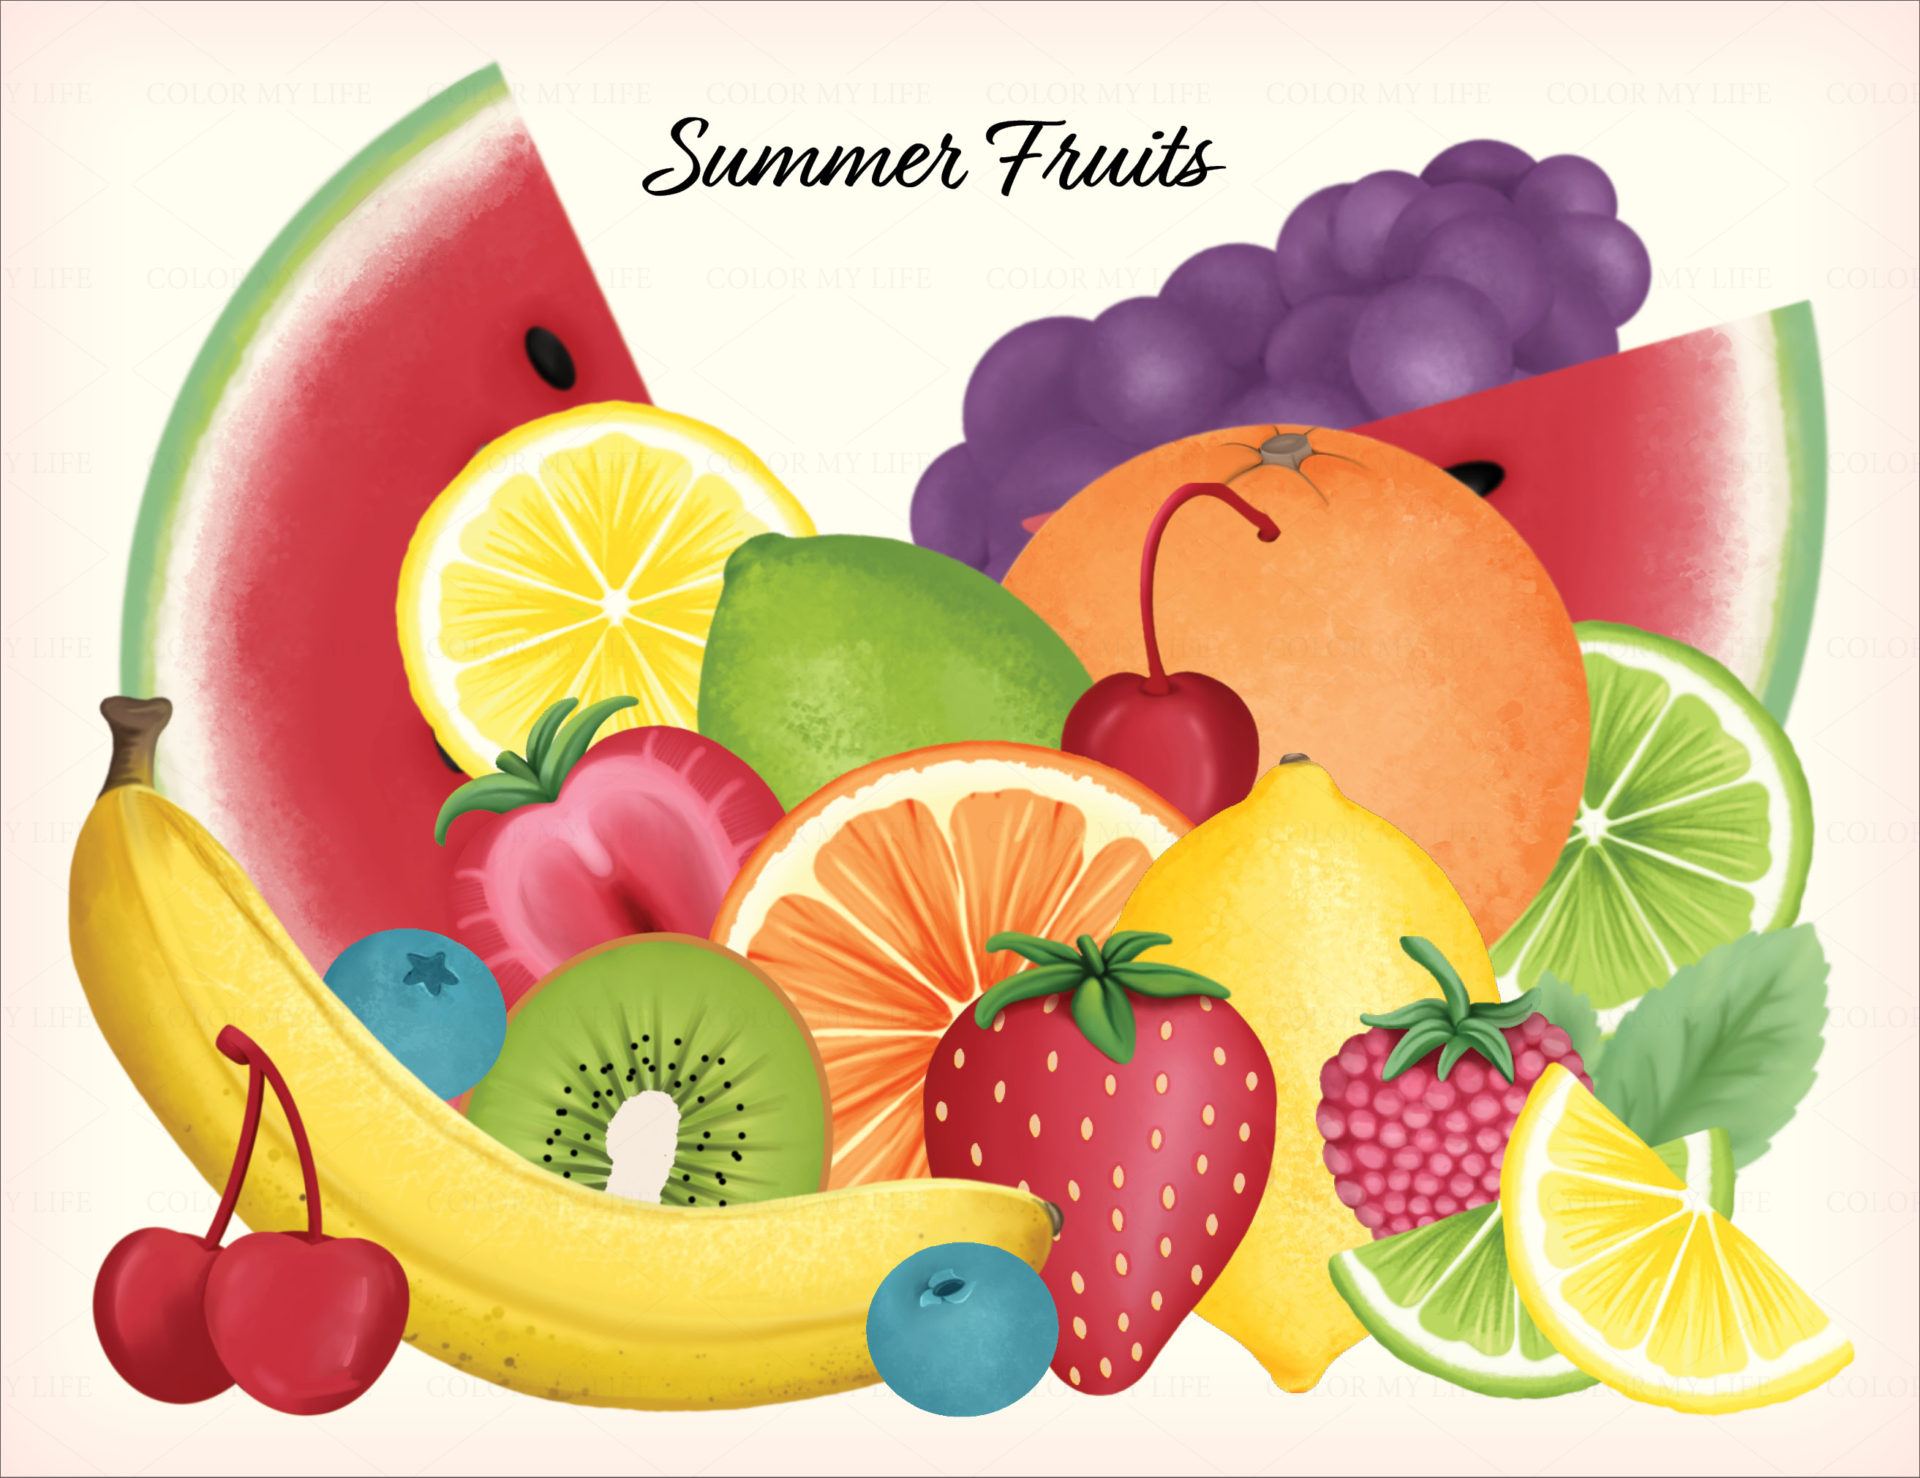 """Sweet Summer"" digital illustration collection, volume 1 from blissfullemon.com."